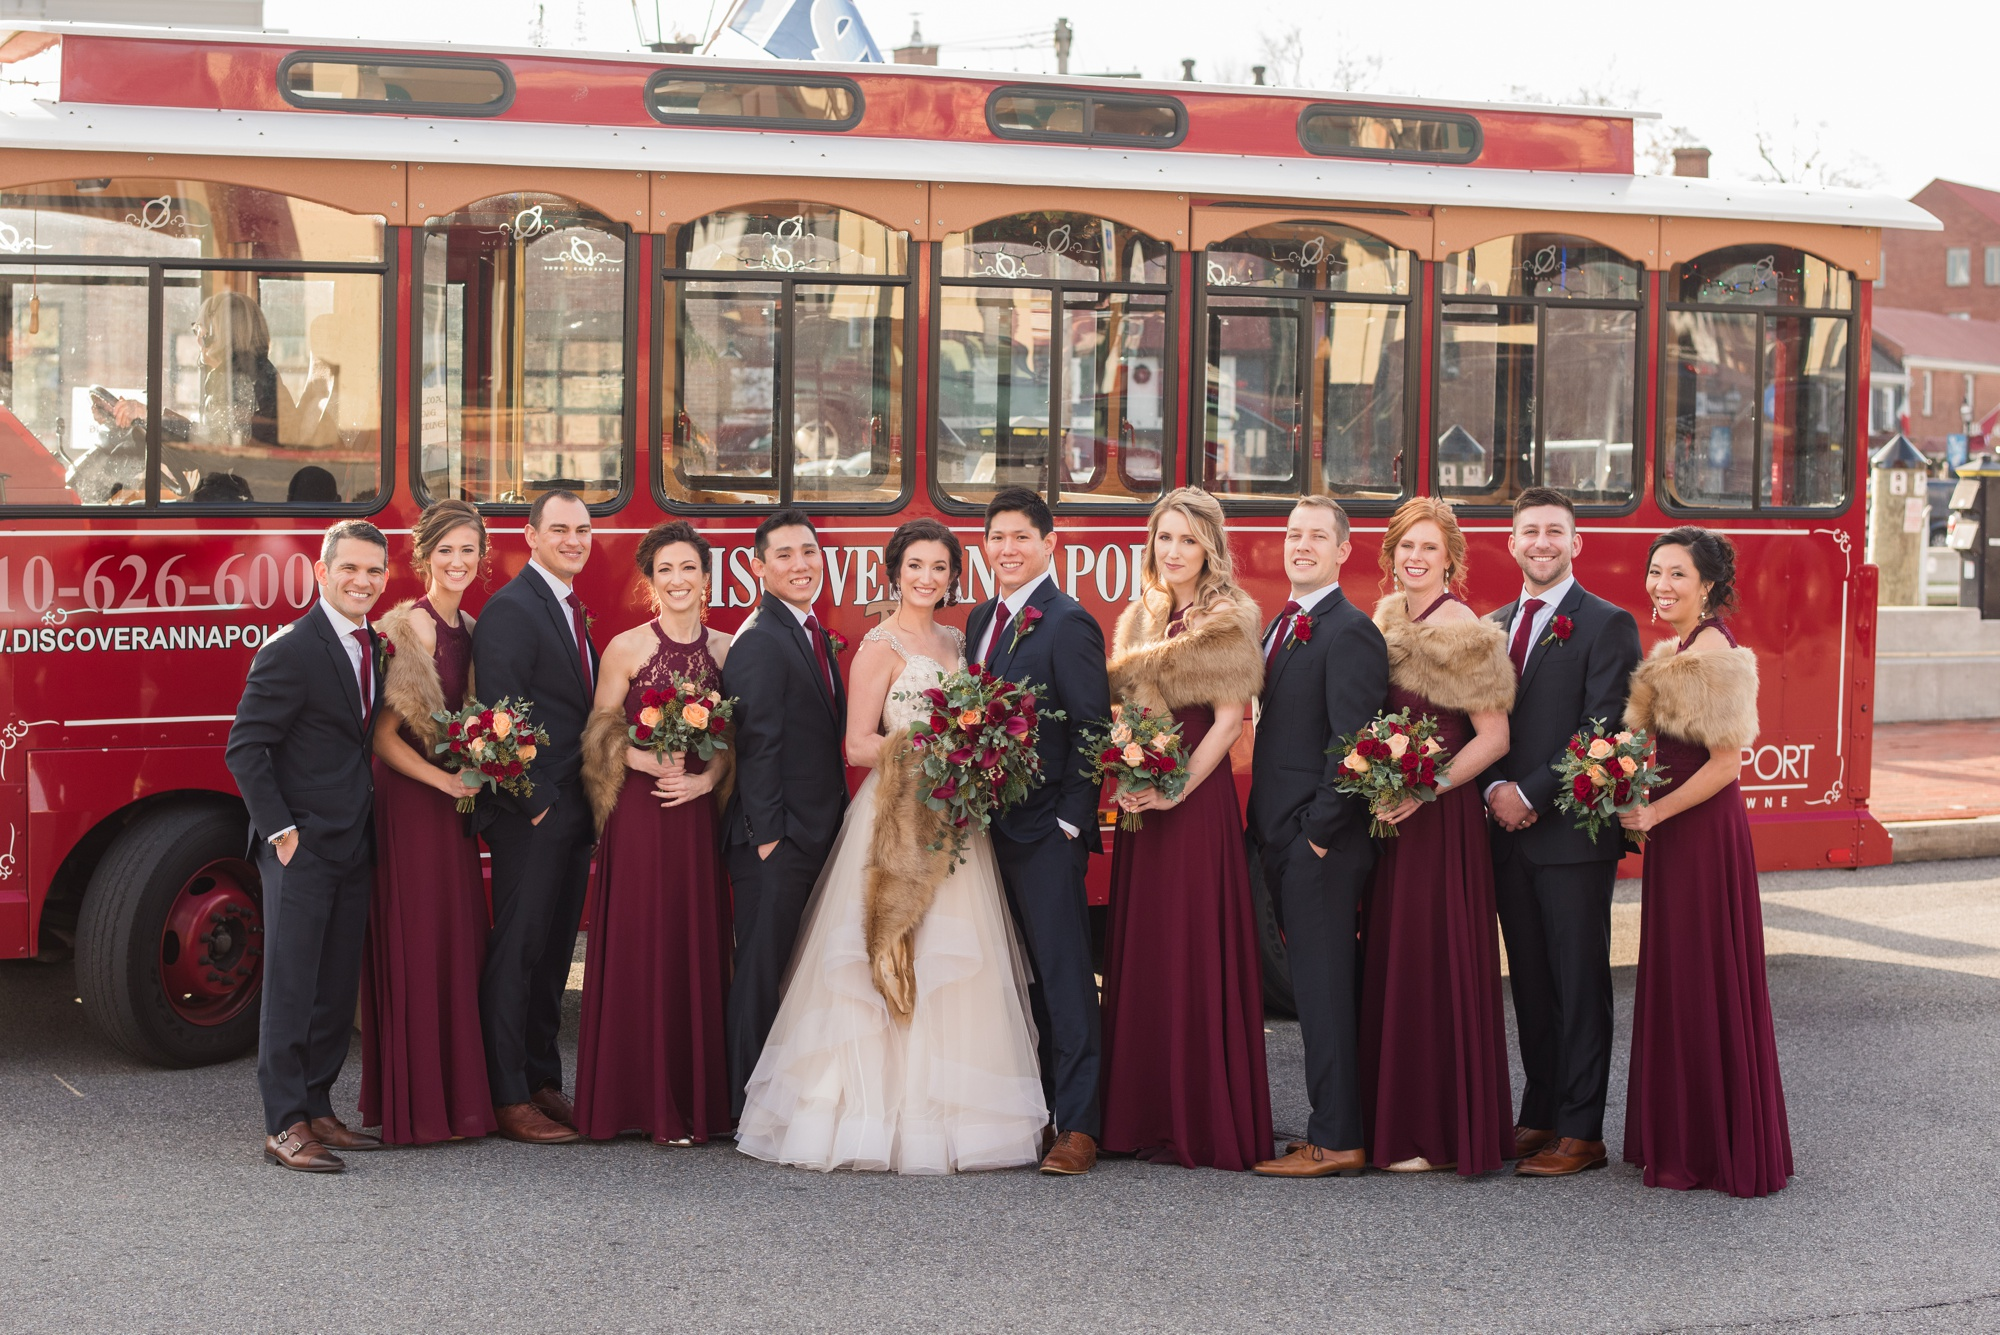 Downtown Annapolis wedding party photos